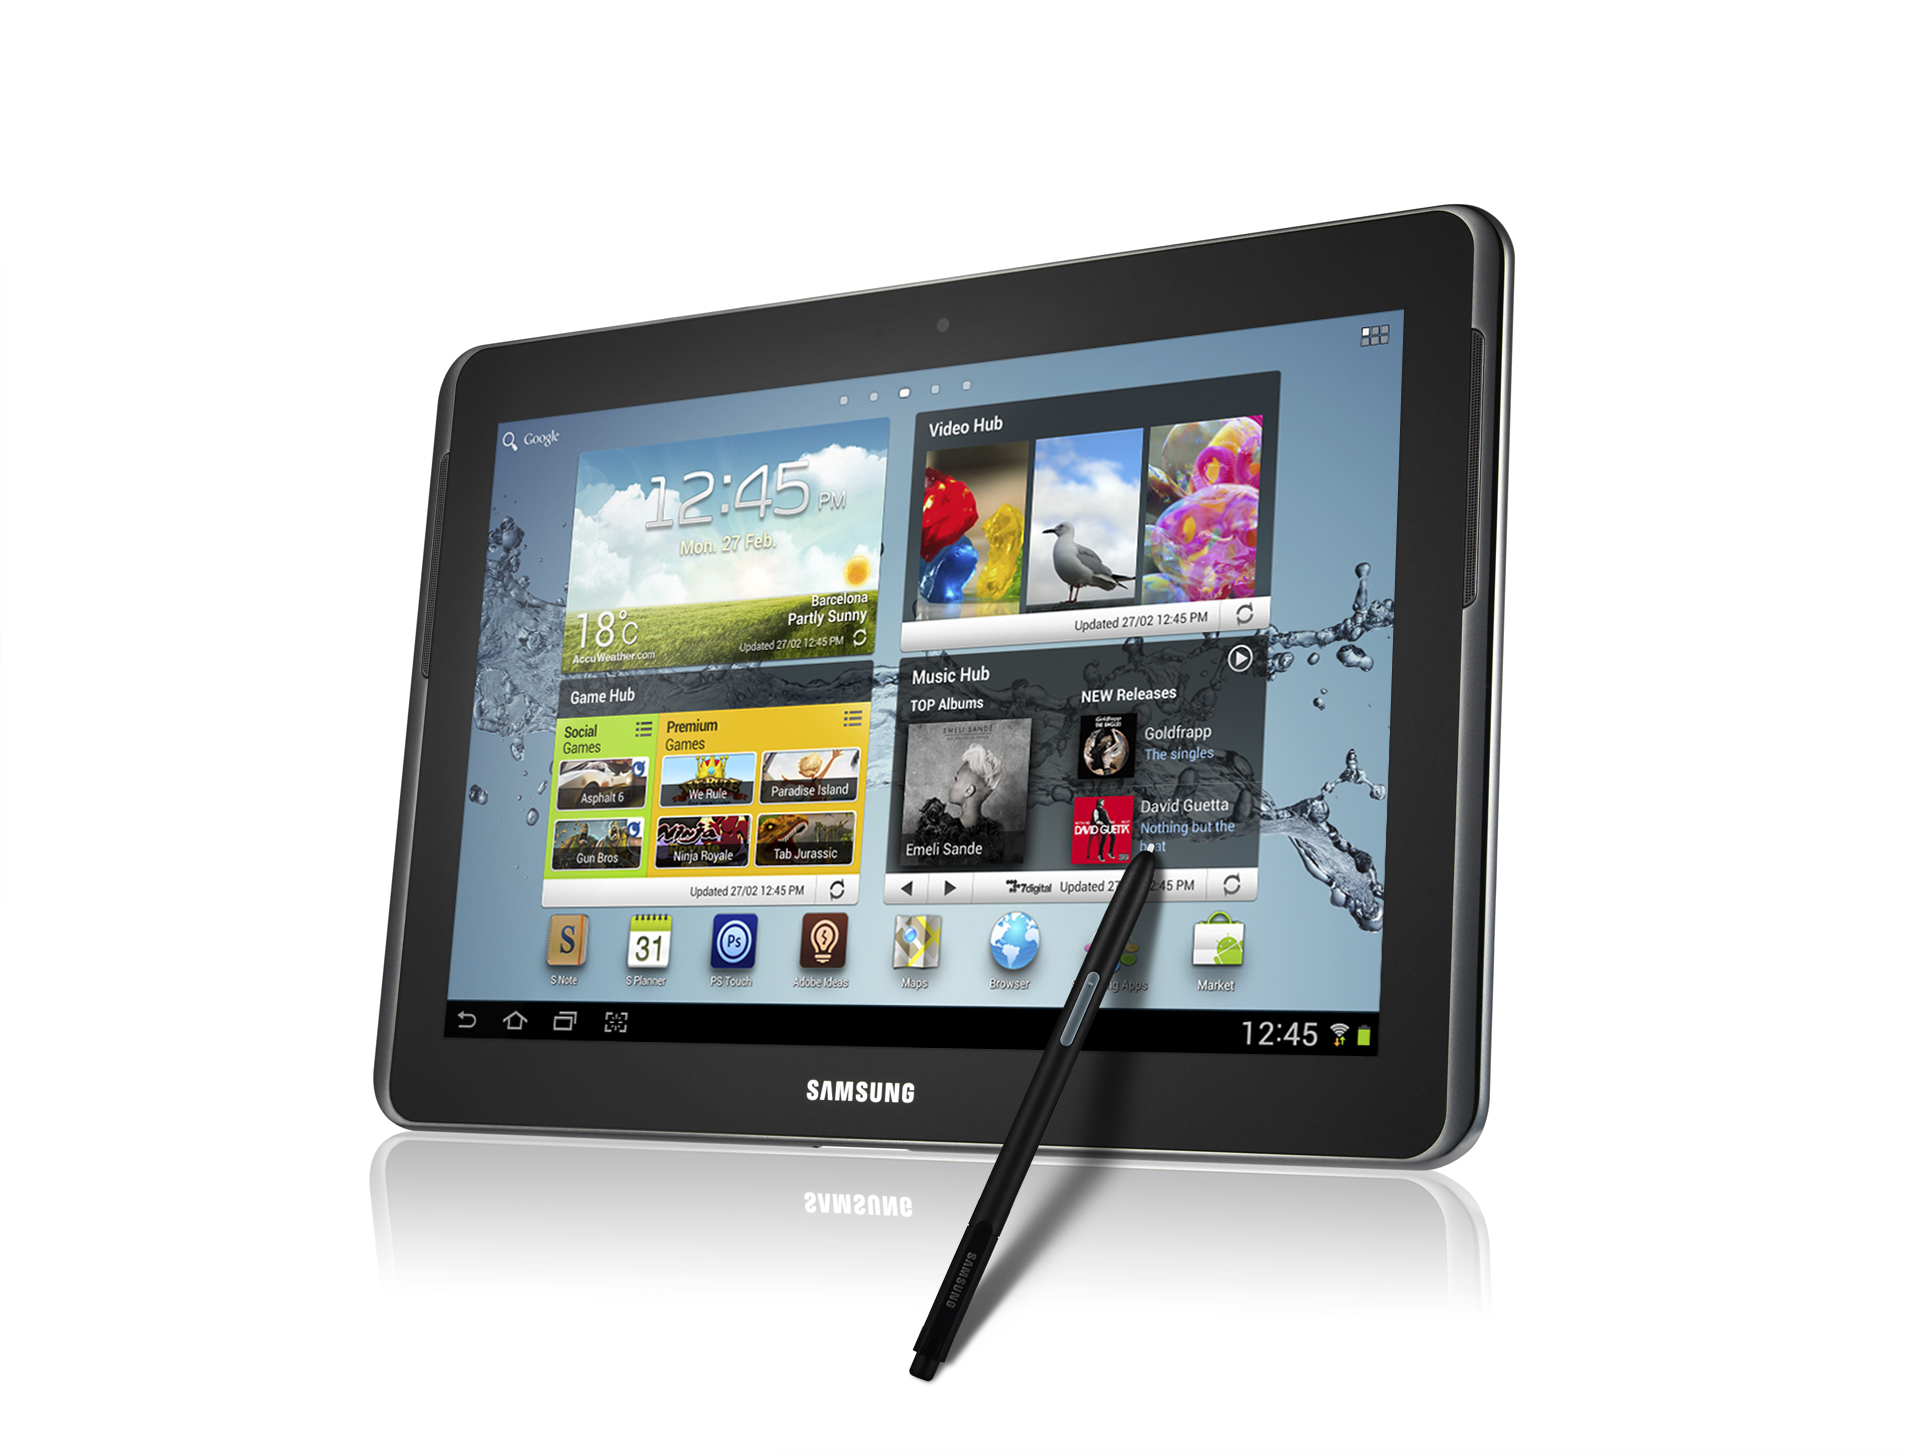 The Galaxy Note 10.1 has landed! - SamMobile